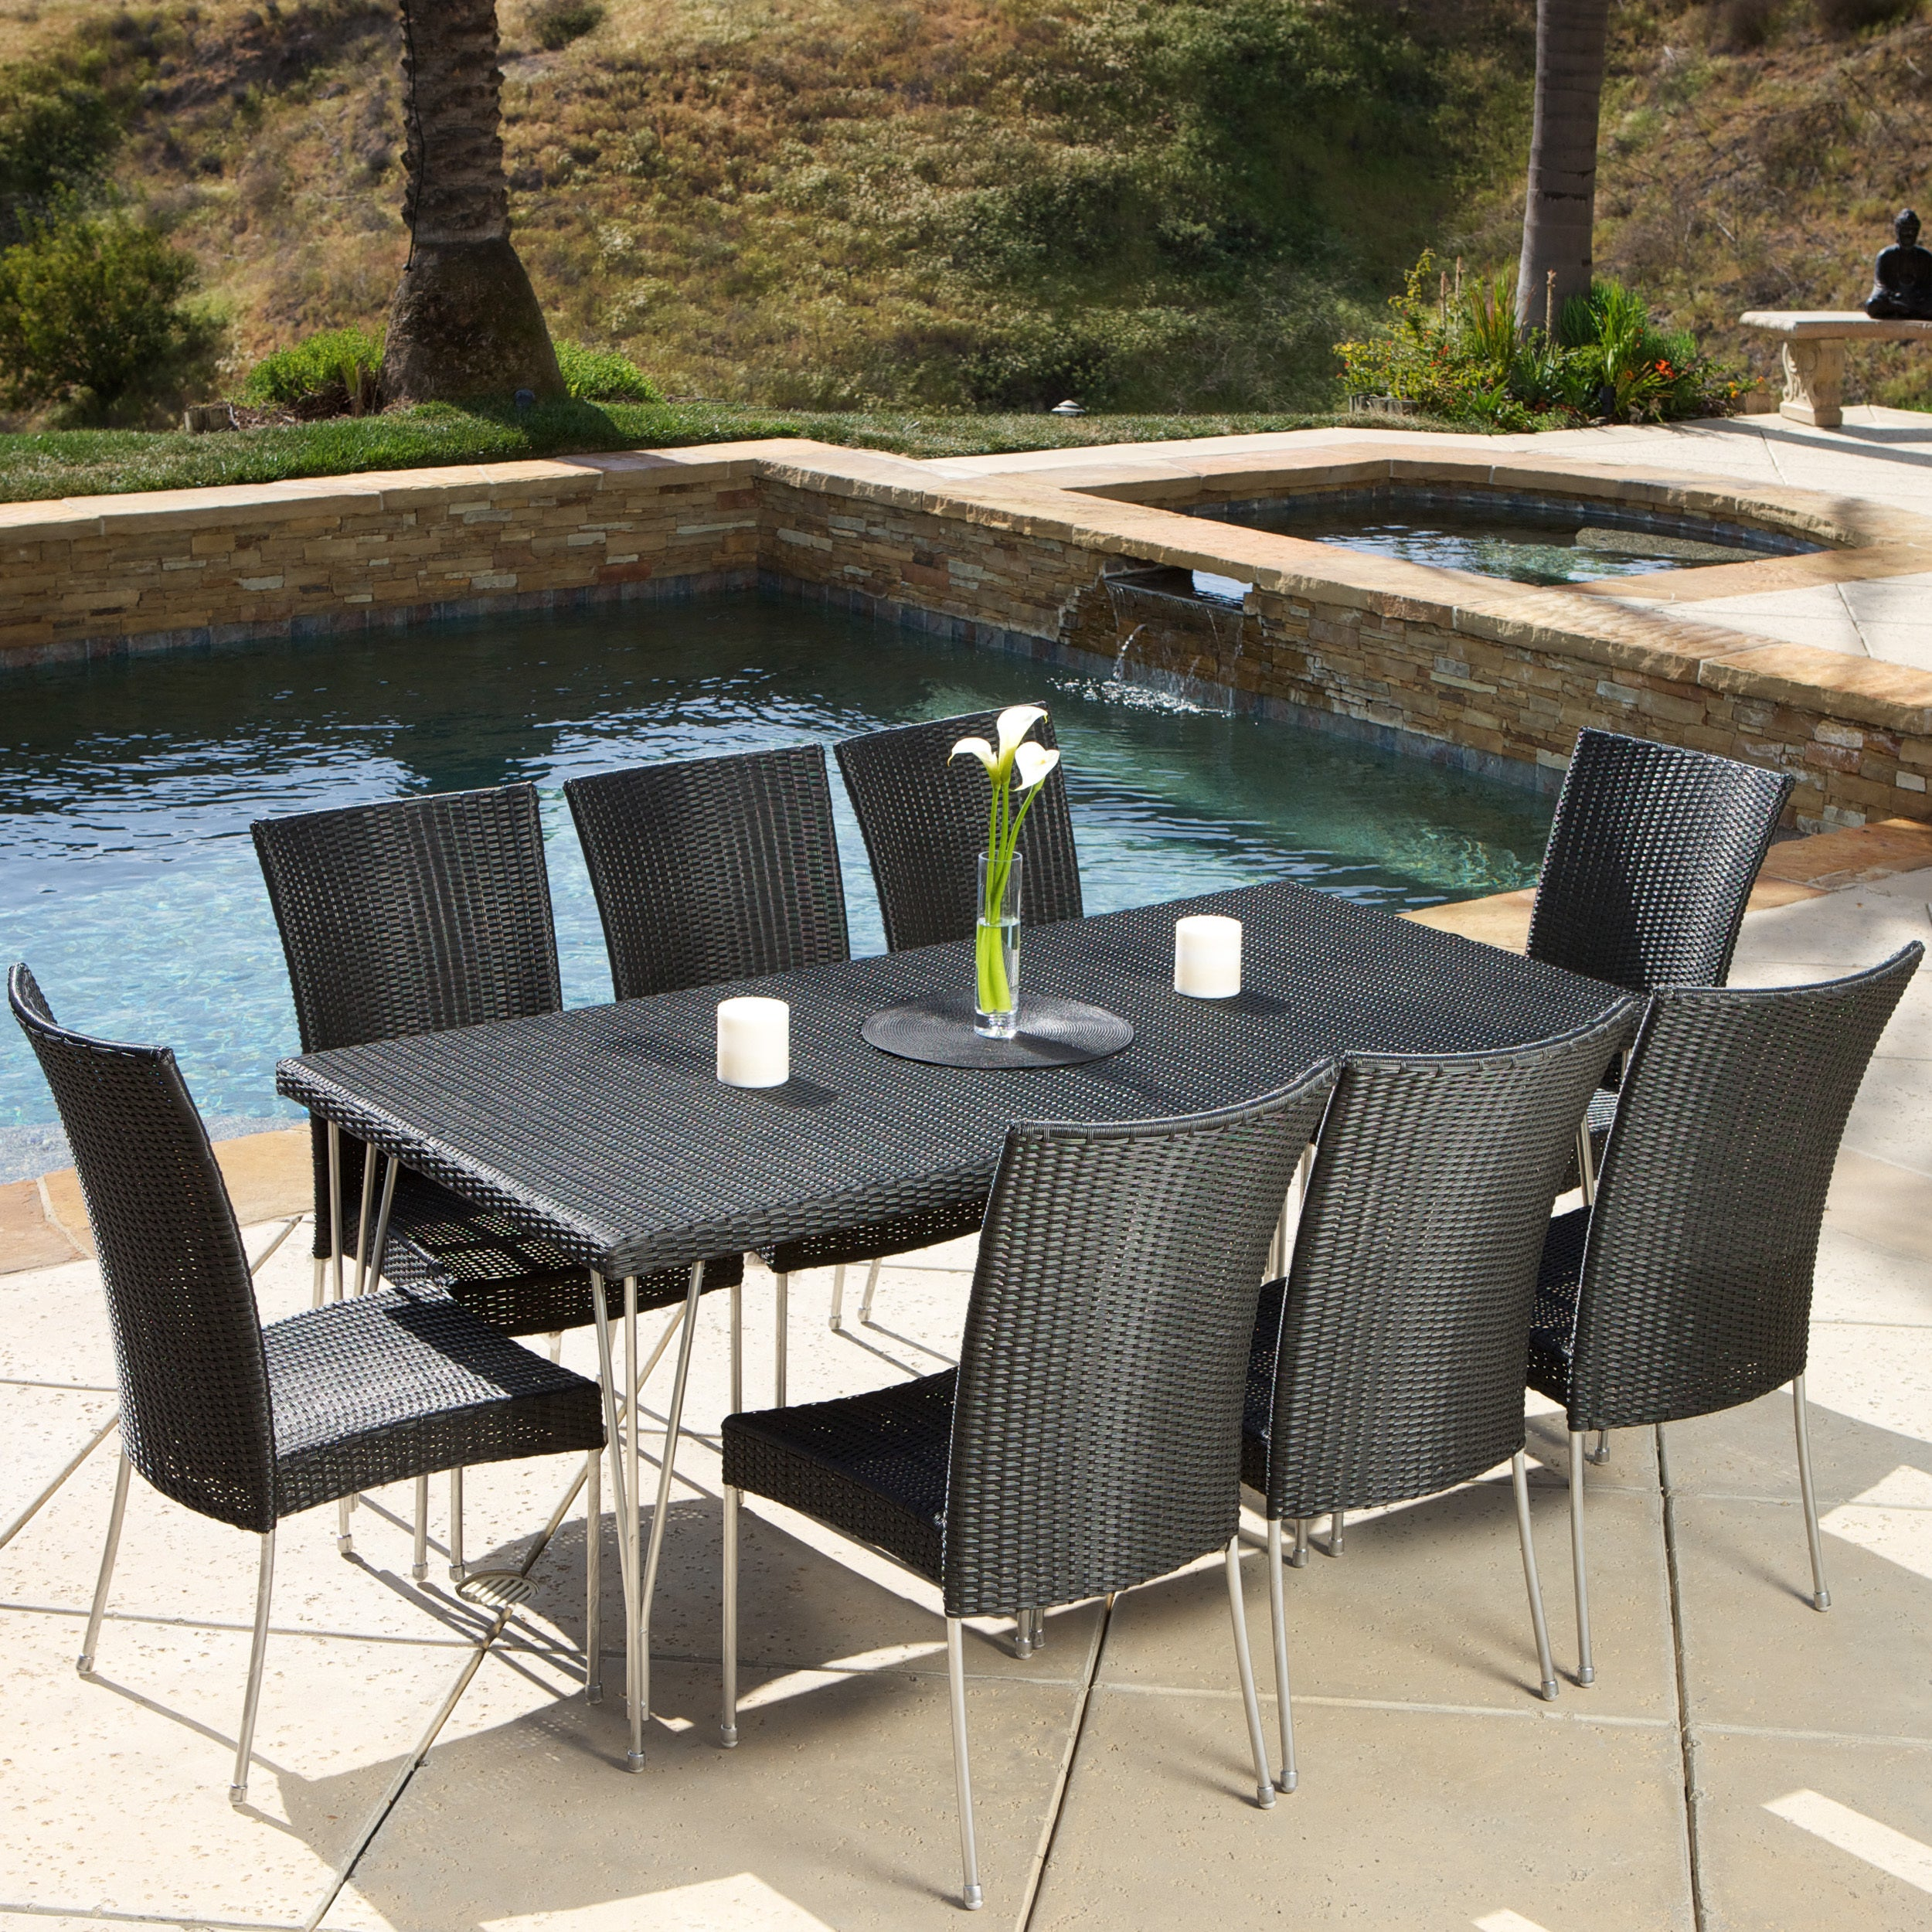 Christopher Knight Home Fairfield 9-piece Outdoor Dining Set at Sears.com